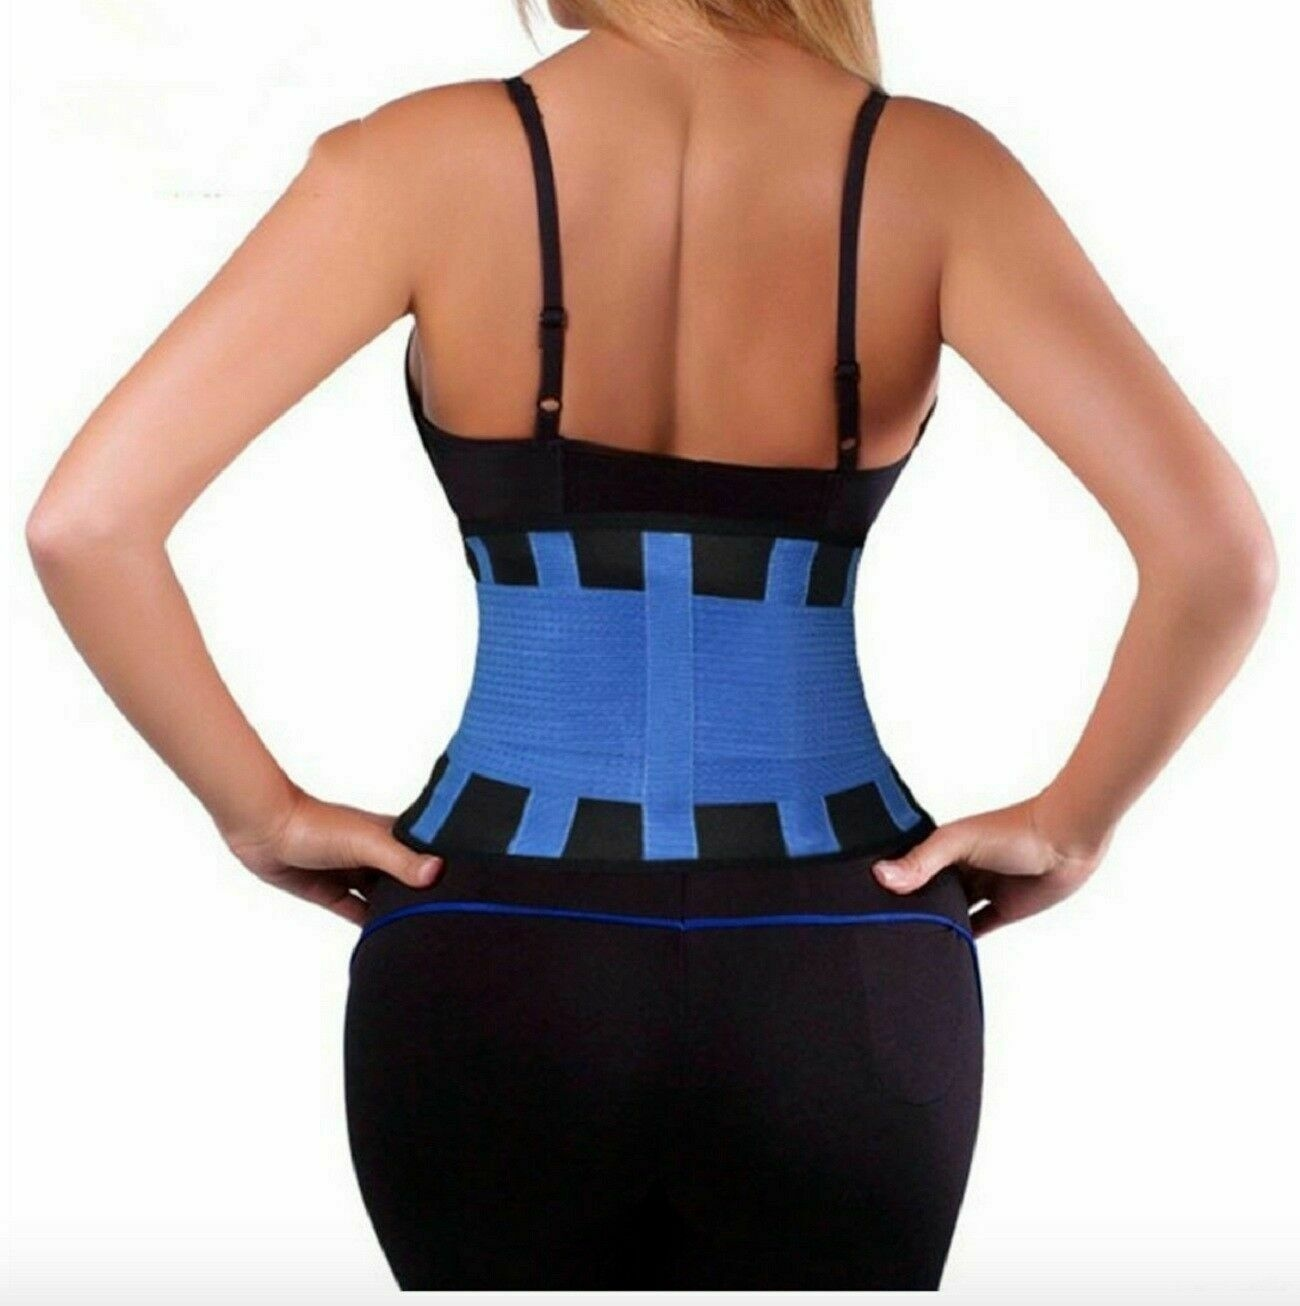 Elastic Waist Trainer Quick Weight Loss Products Men Women Kit Waste Cincher